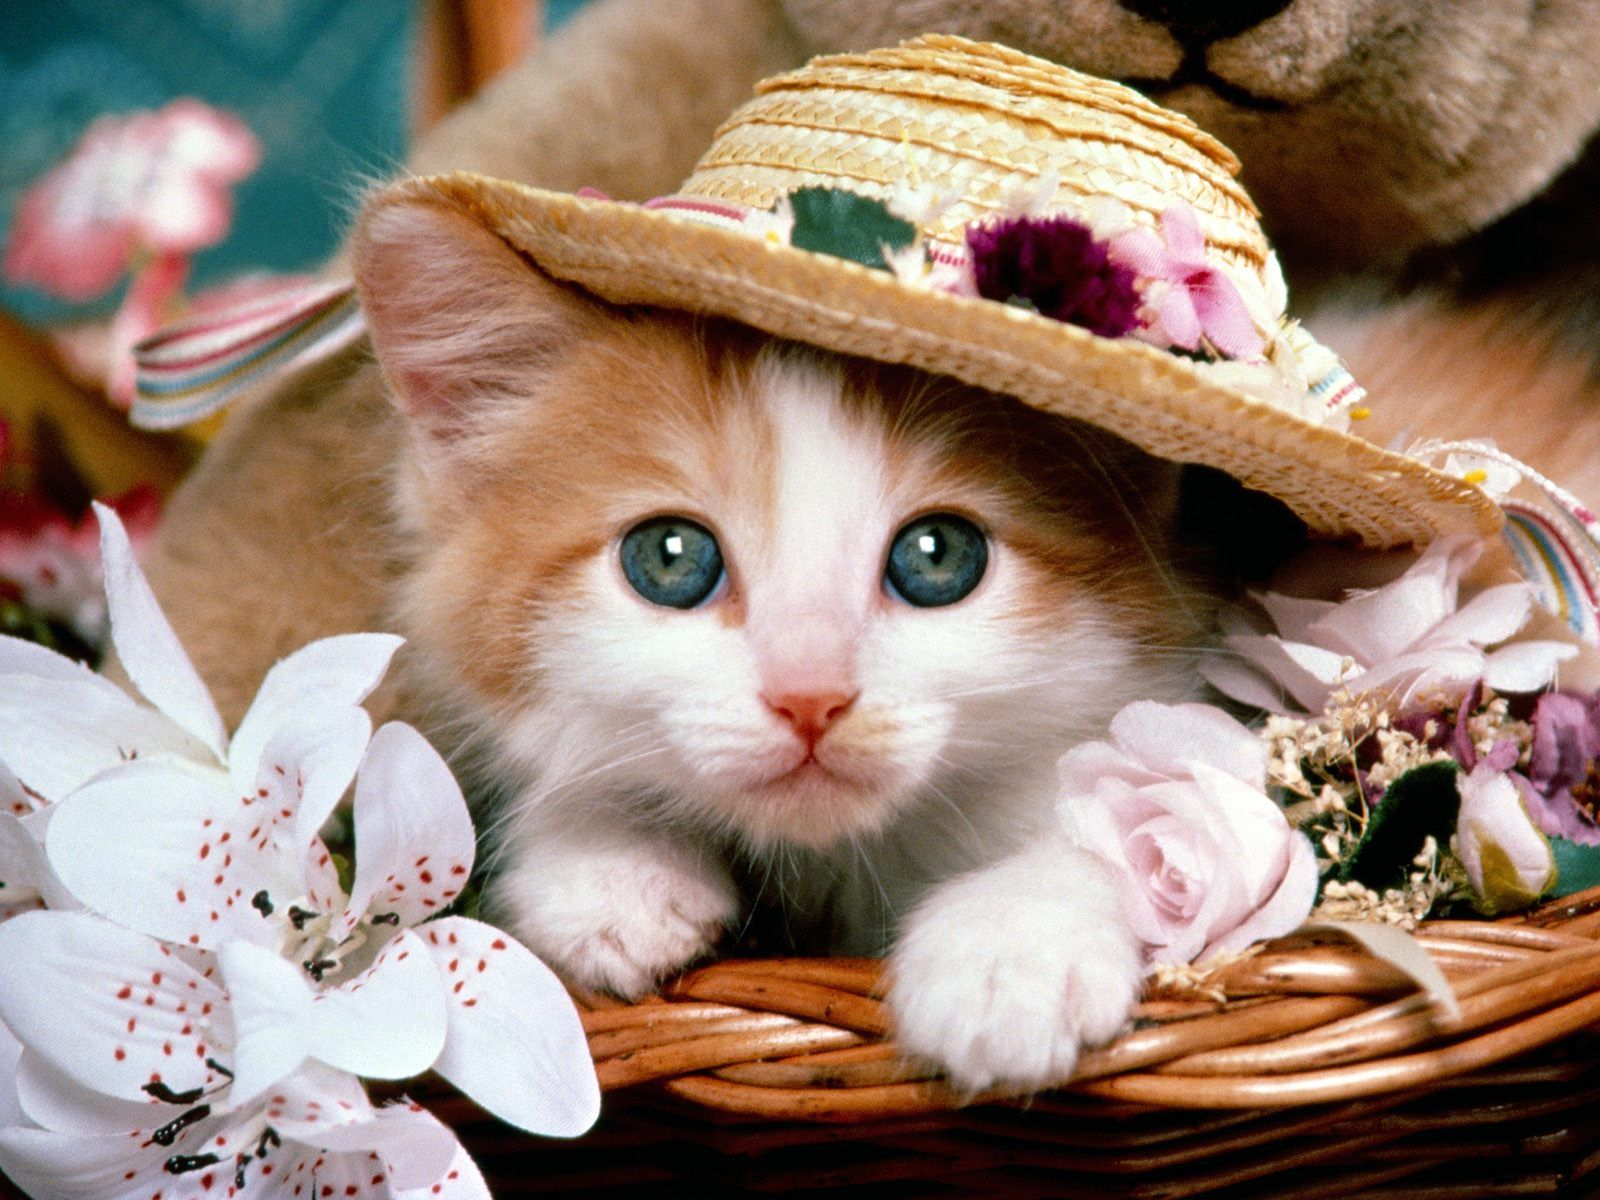 Cute cats wallpaper search results from Google